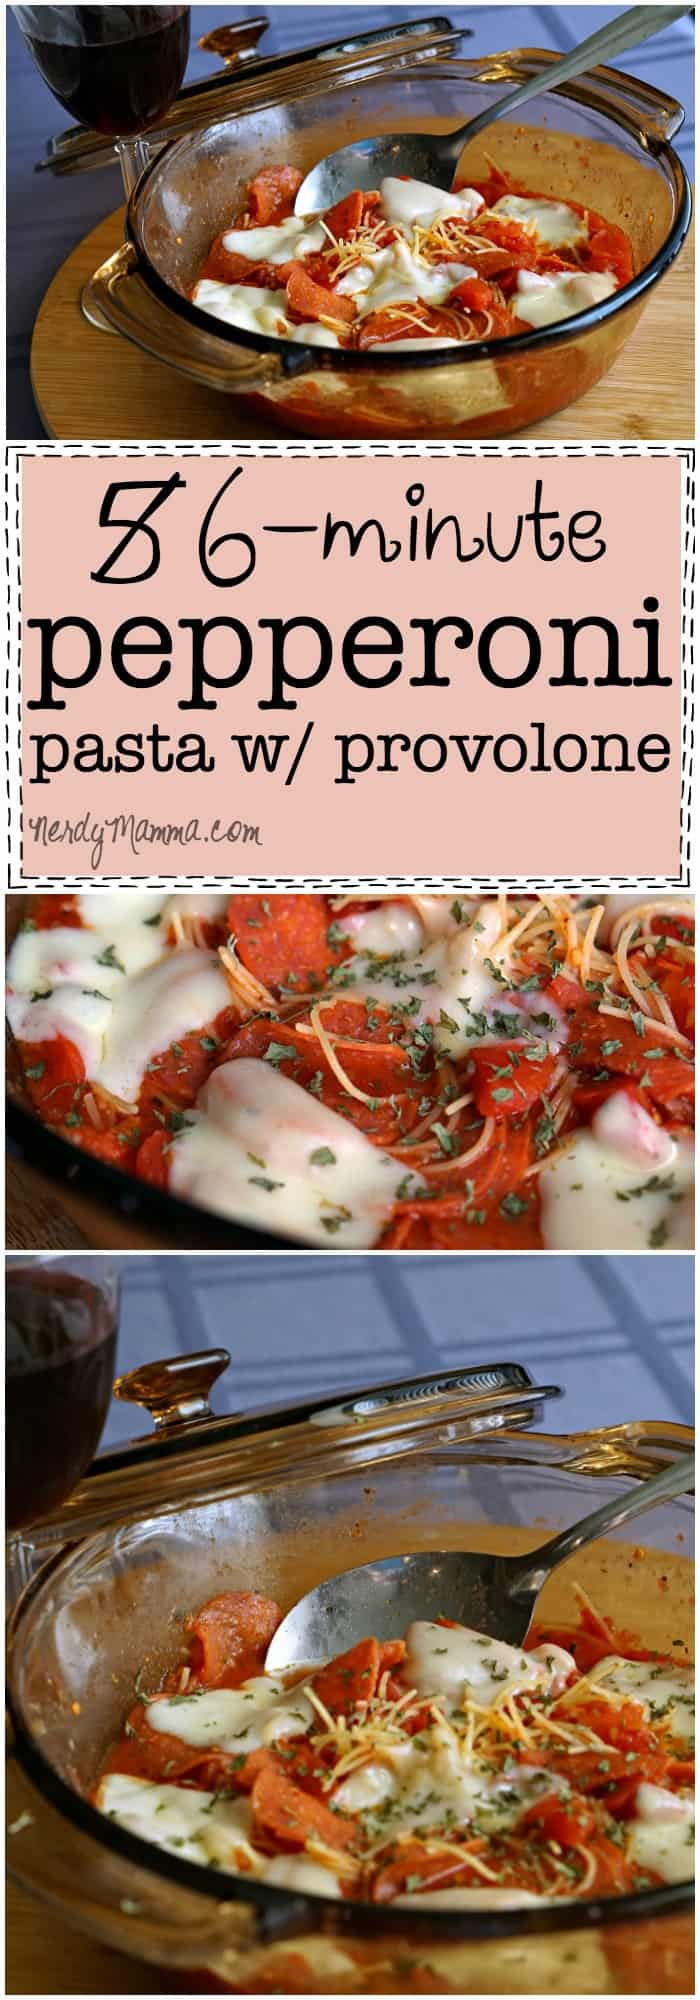 This recipe for 6-minute pepperoni pasta with provolone is so yummy-sounding. And in only 6 minutes! Love it.